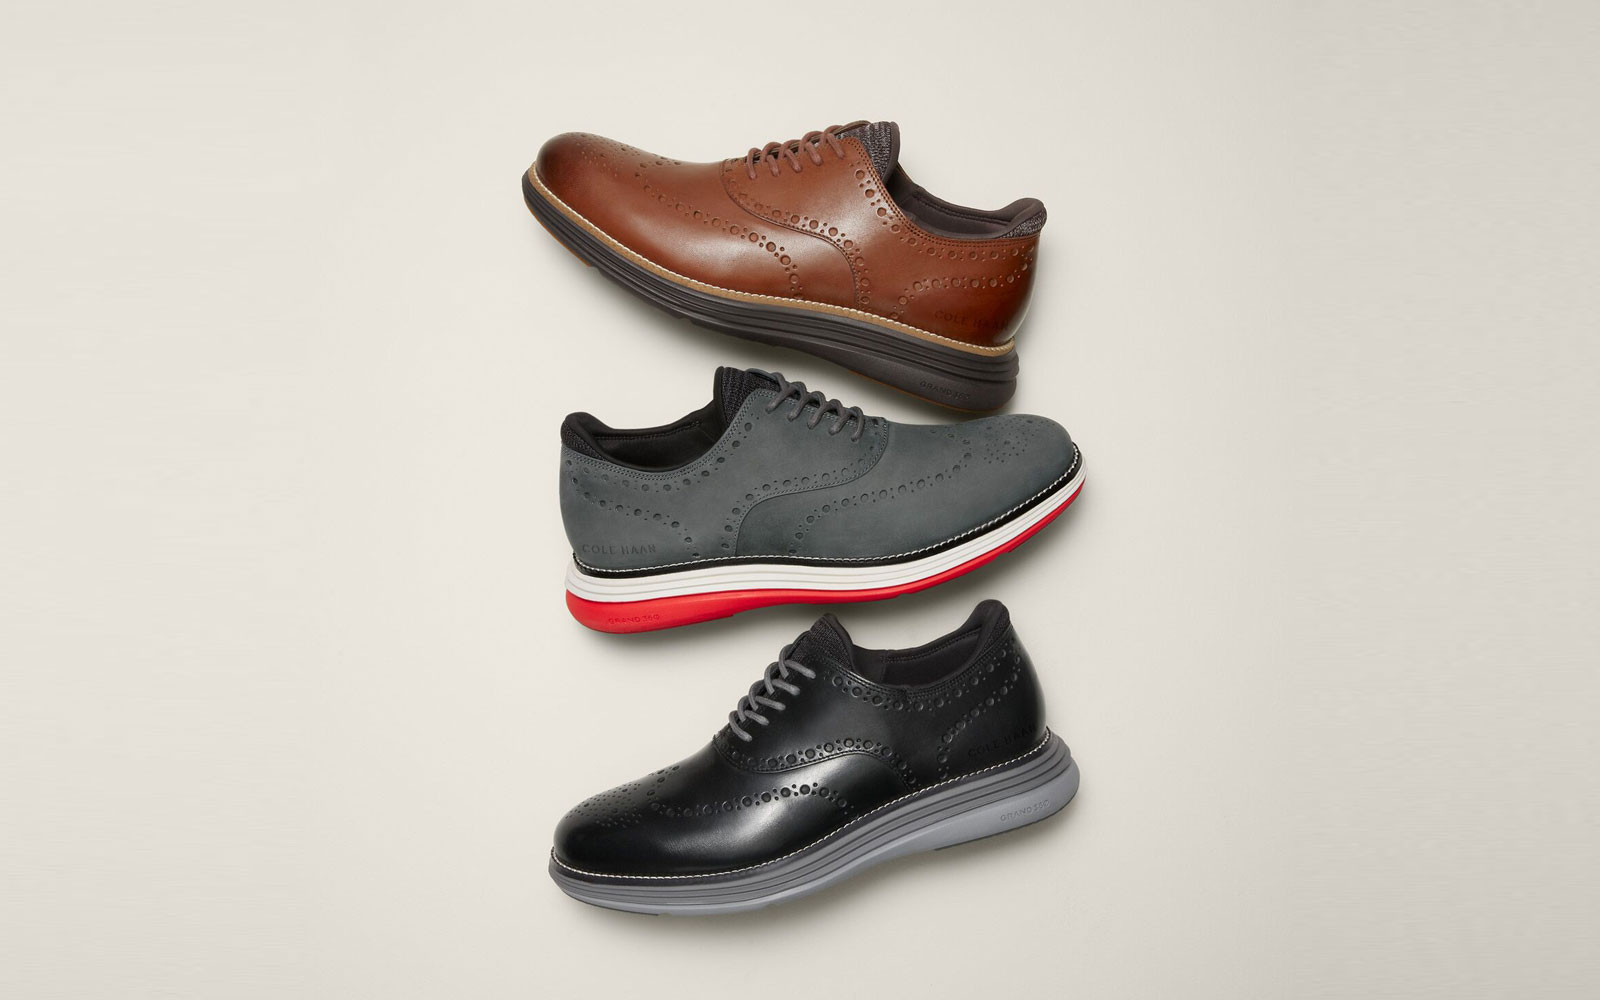 Three Men's Oxford Shoes in Different Colors